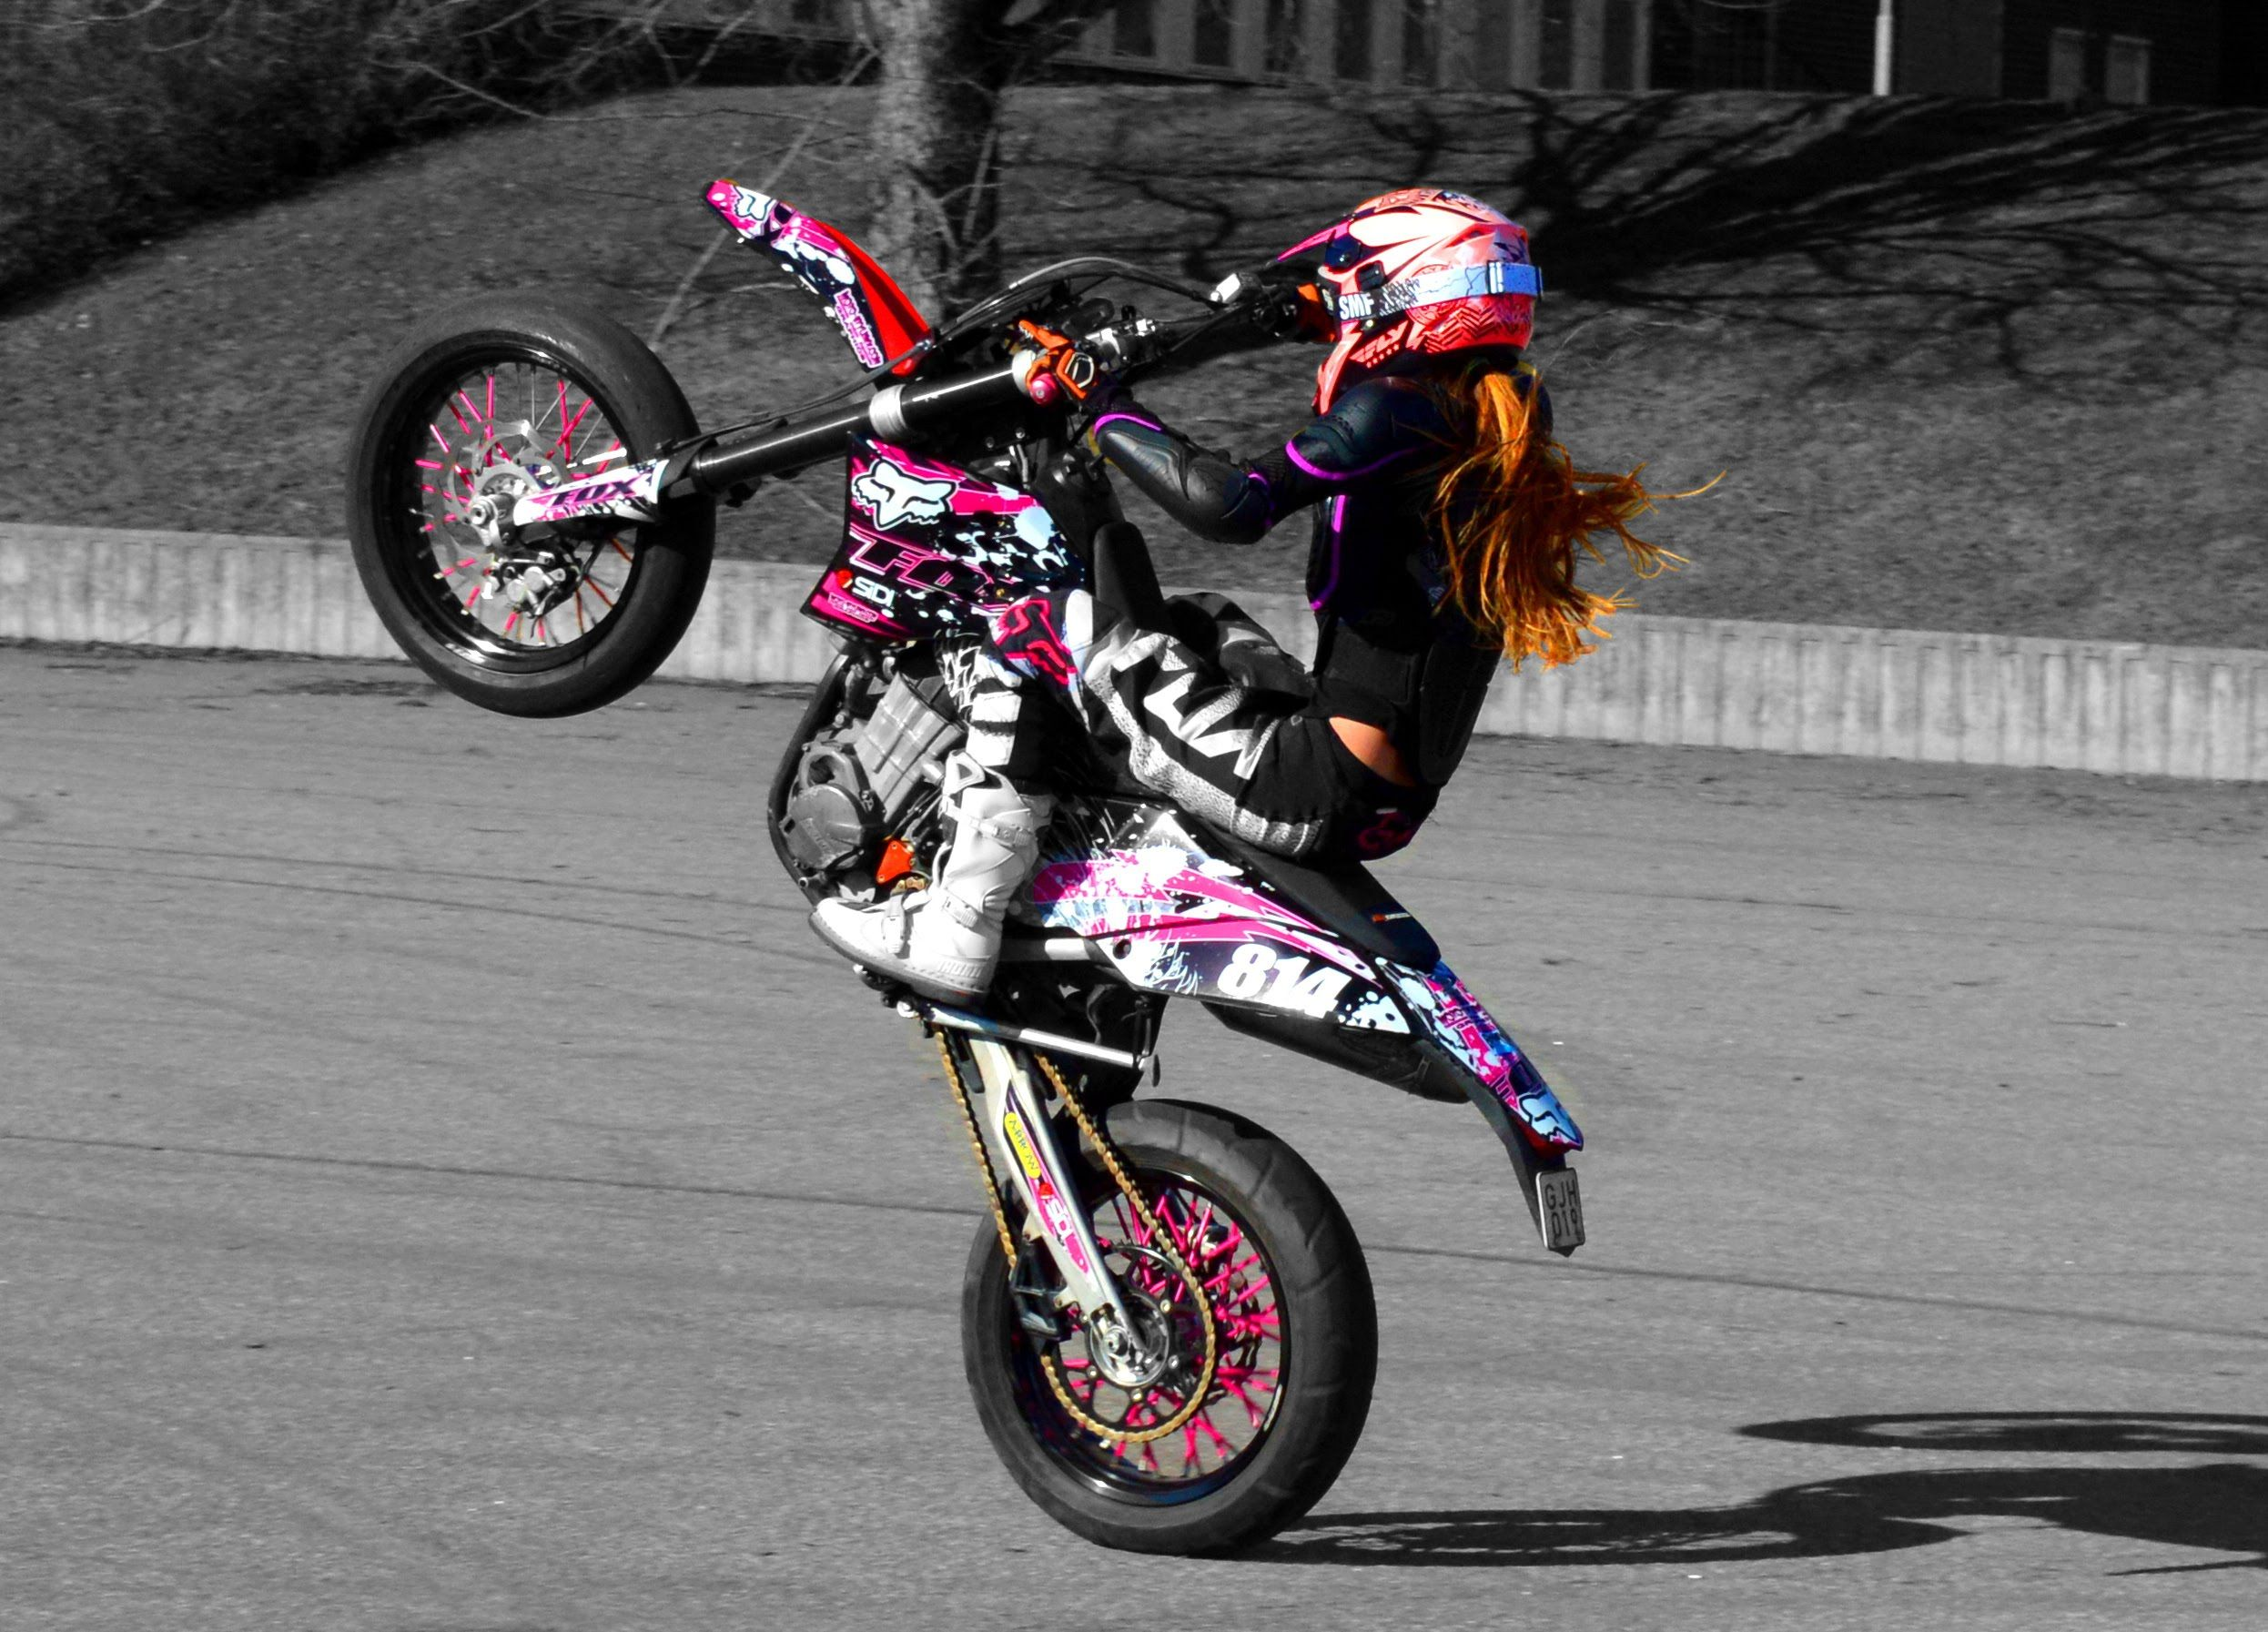 Pin By Moto-Stylemx On Our Graphics Kits In The Wild  Motorcycle, Biker Girl, Lady Biker-1440